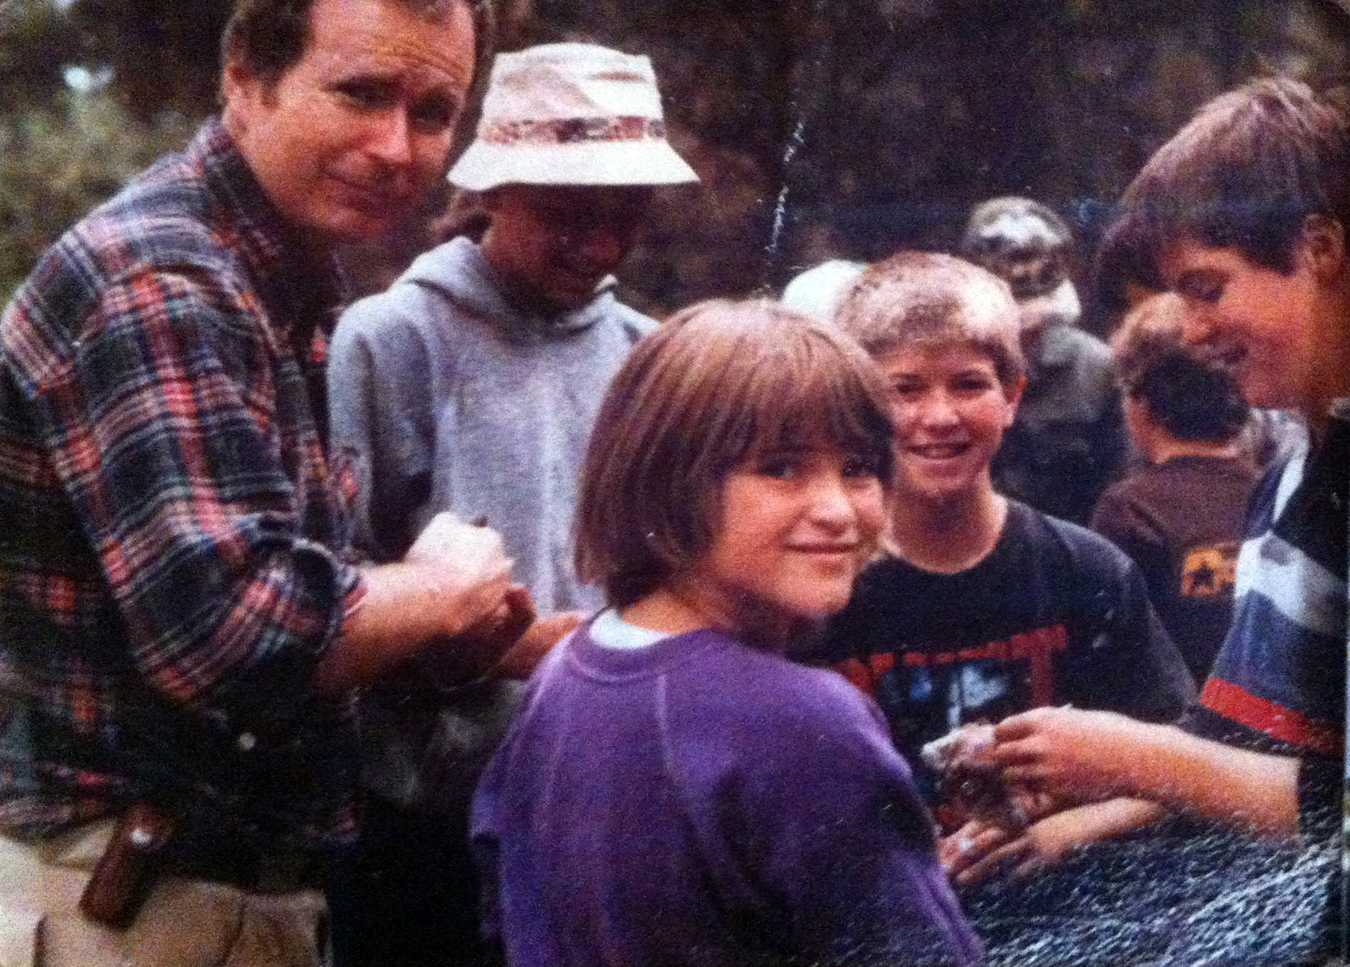 A handful of Whalens at the annual bird hunt in Esterbrook, WY, circa 1985.